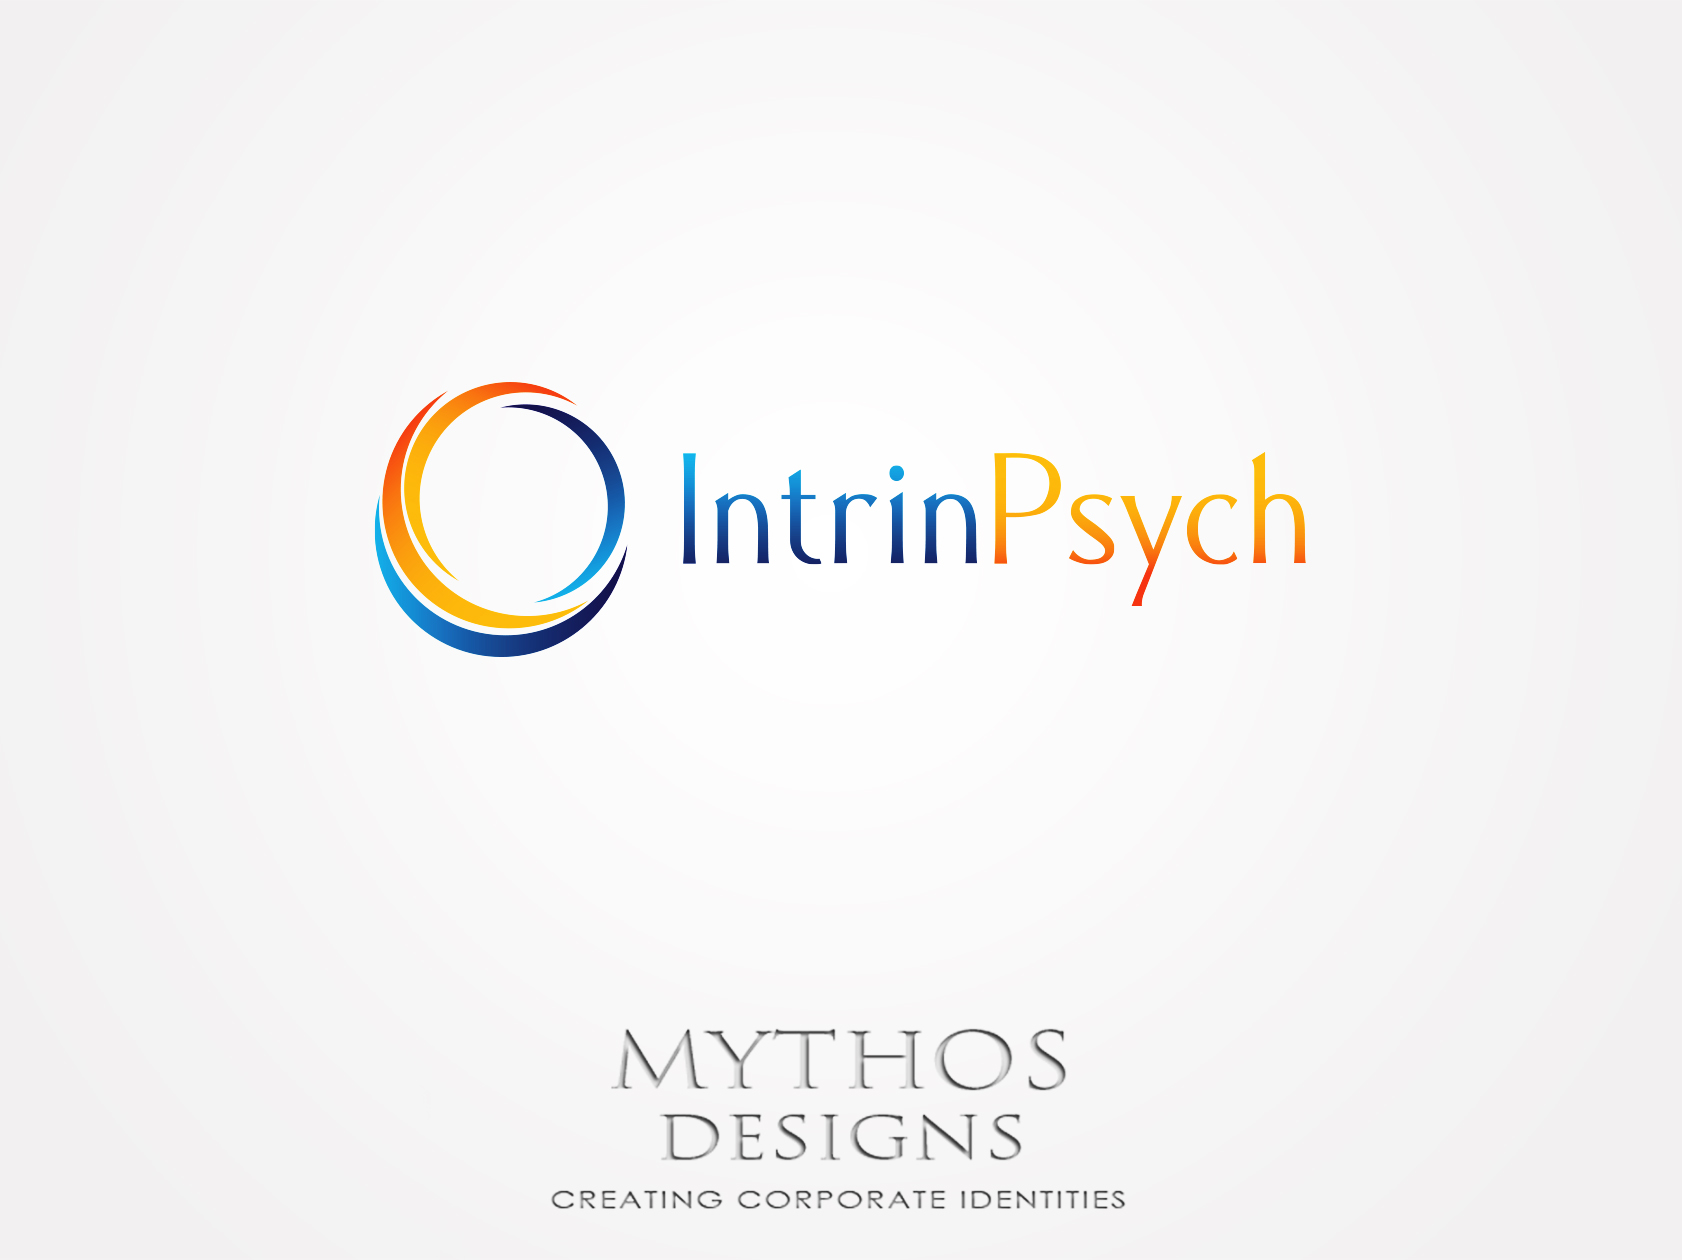 Logo Design by Mythos Designs - Entry No. 70 in the Logo Design Contest New Logo Design for IntrinPsych.